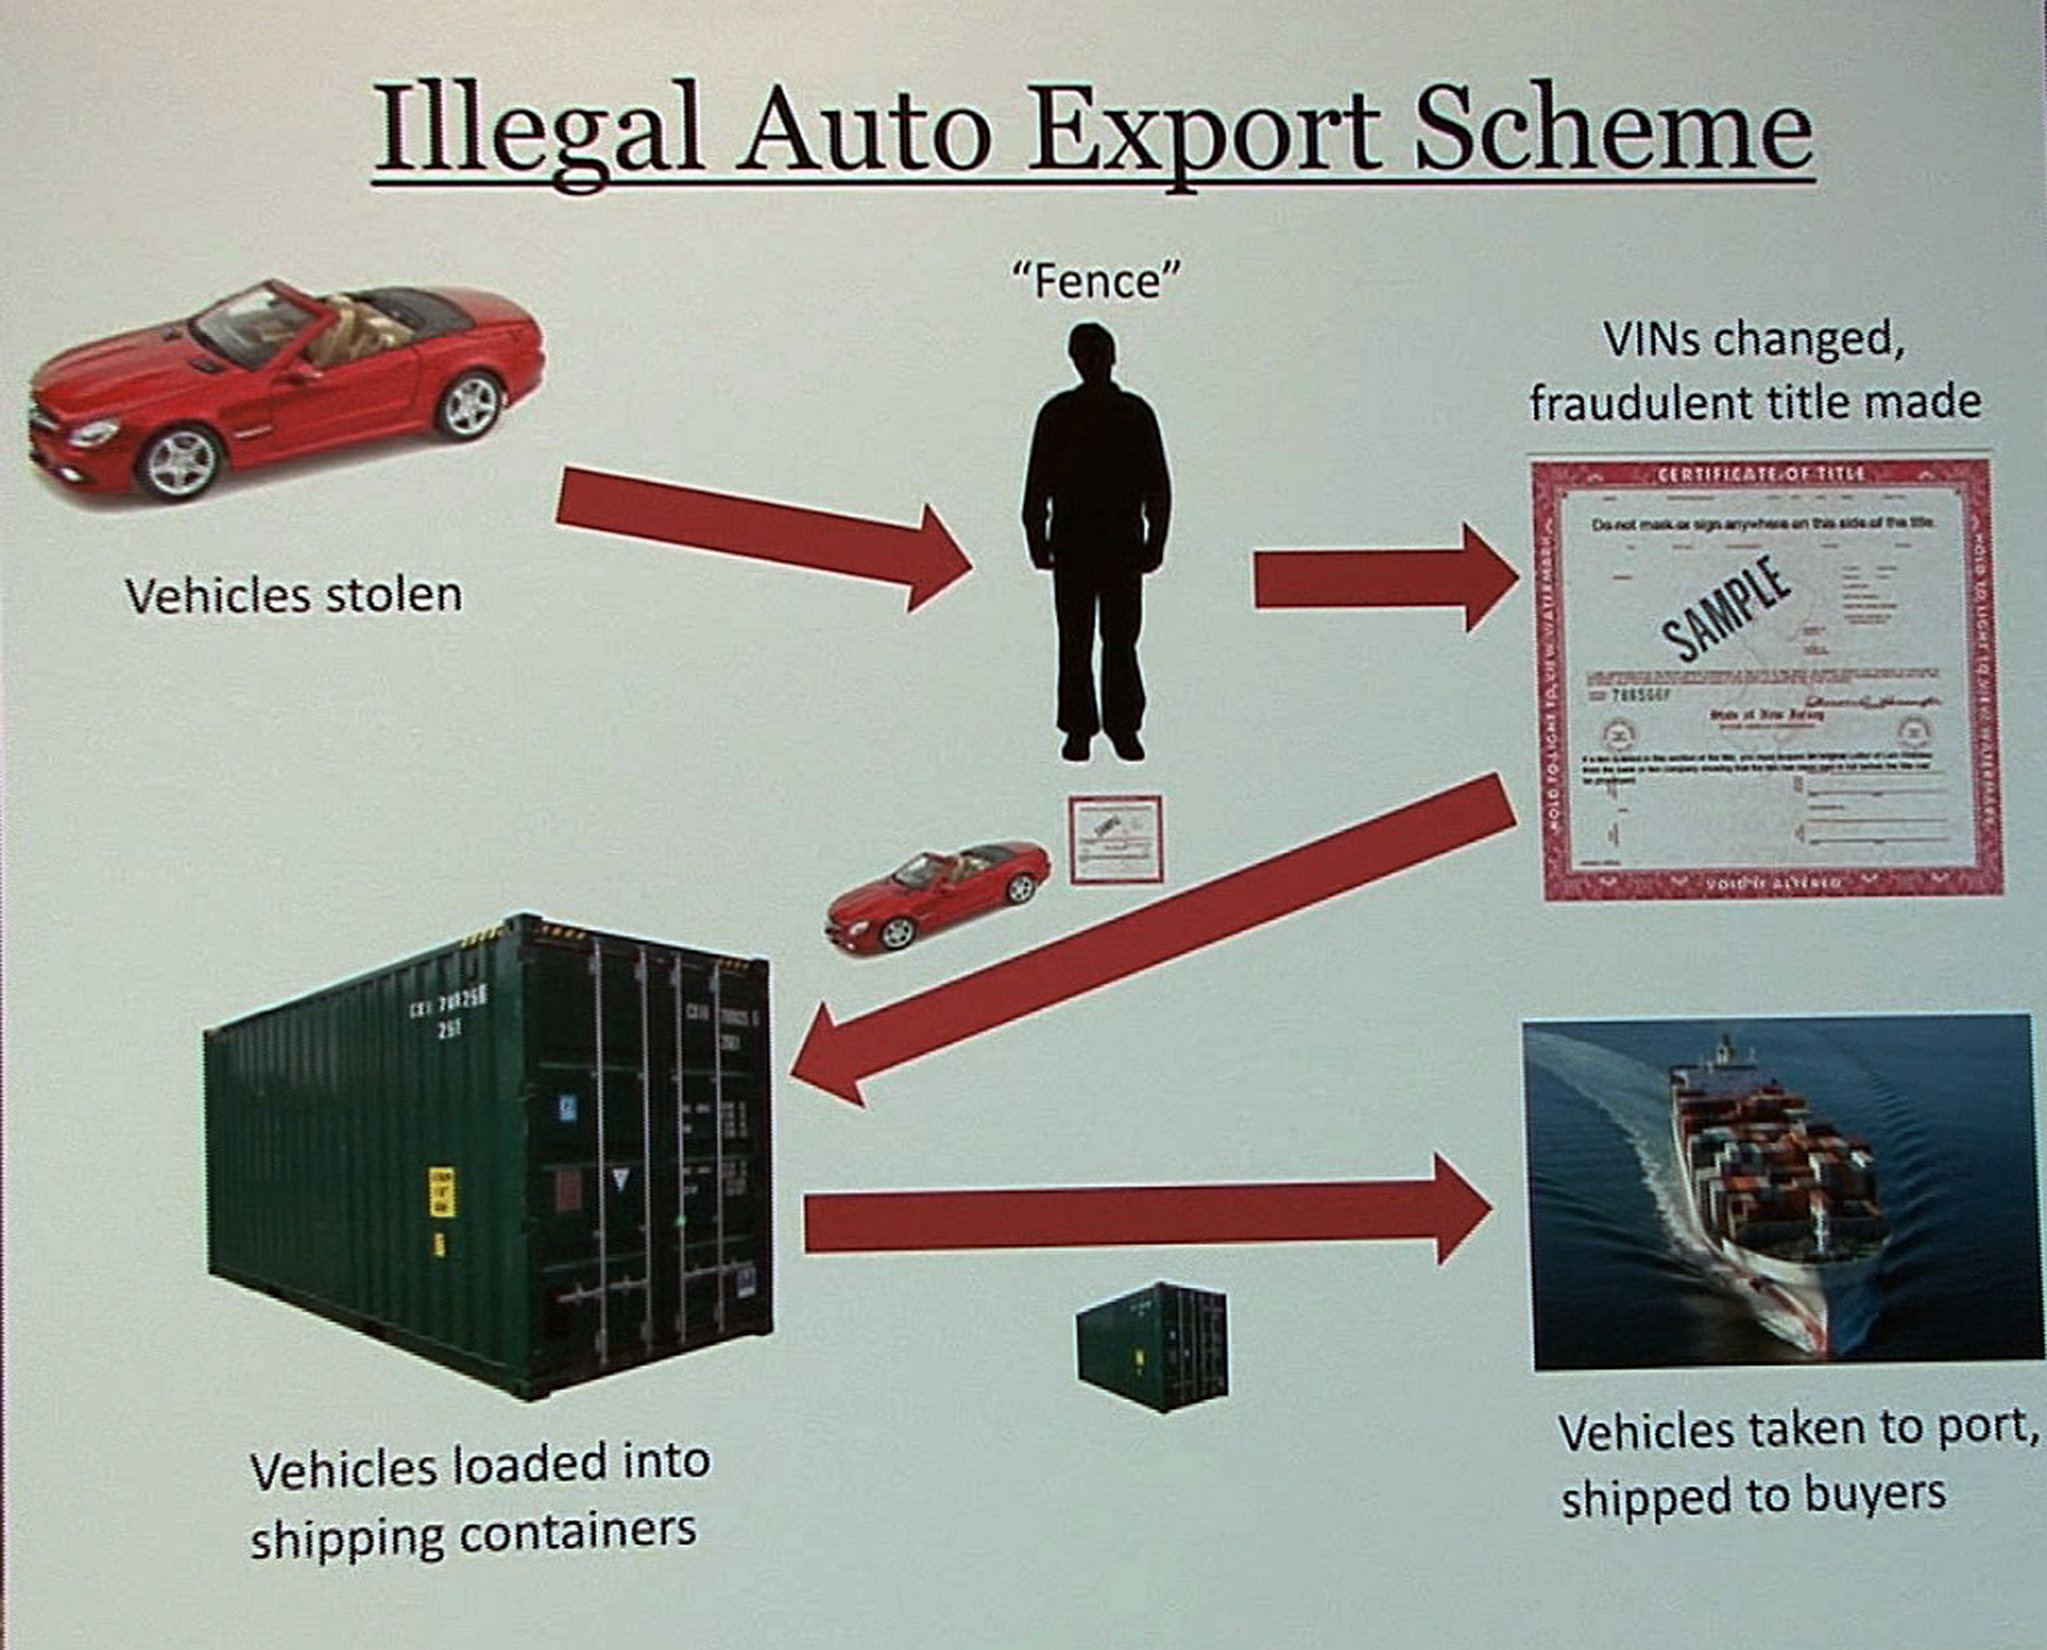 illegal auto export scheme